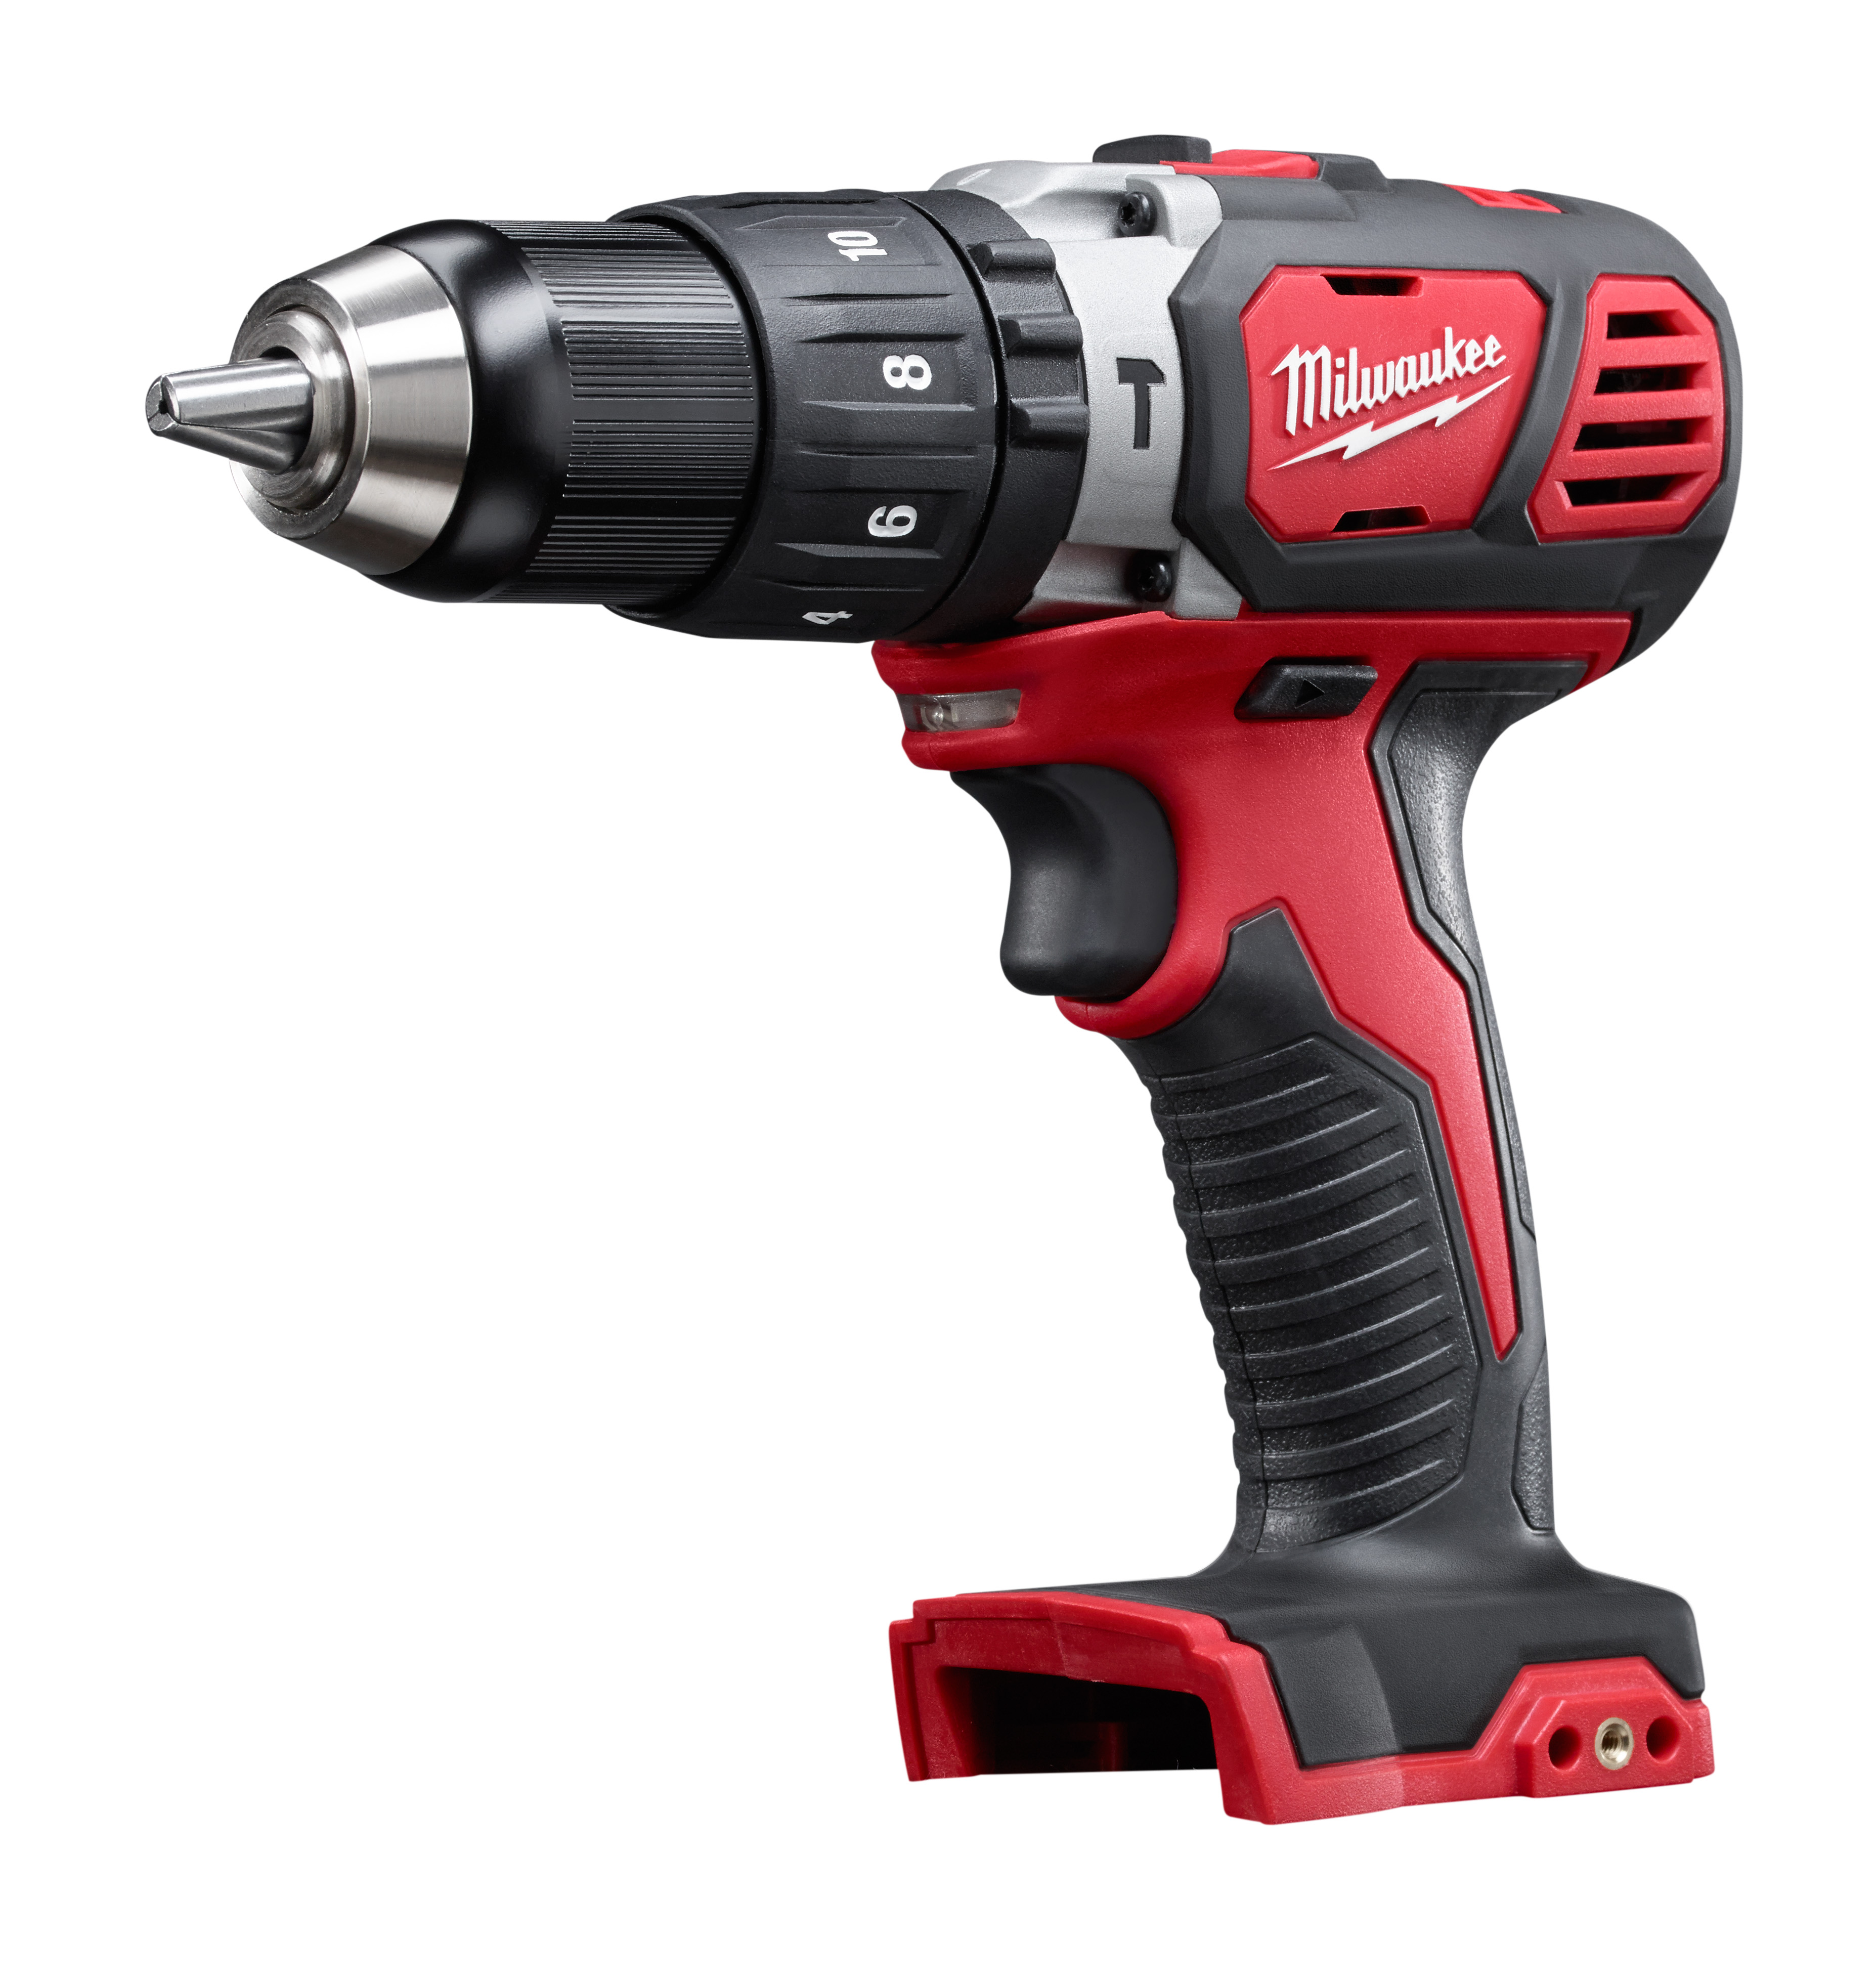 Milwaukee® M18™ 2607-20 Cordless Hammer Drill/Driver, 1/2 in Metal Single Sleeve Ratcheting Lock Chuck, 18 VDC, 400/1800 rpm No-Load, Lithium-Ion Battery